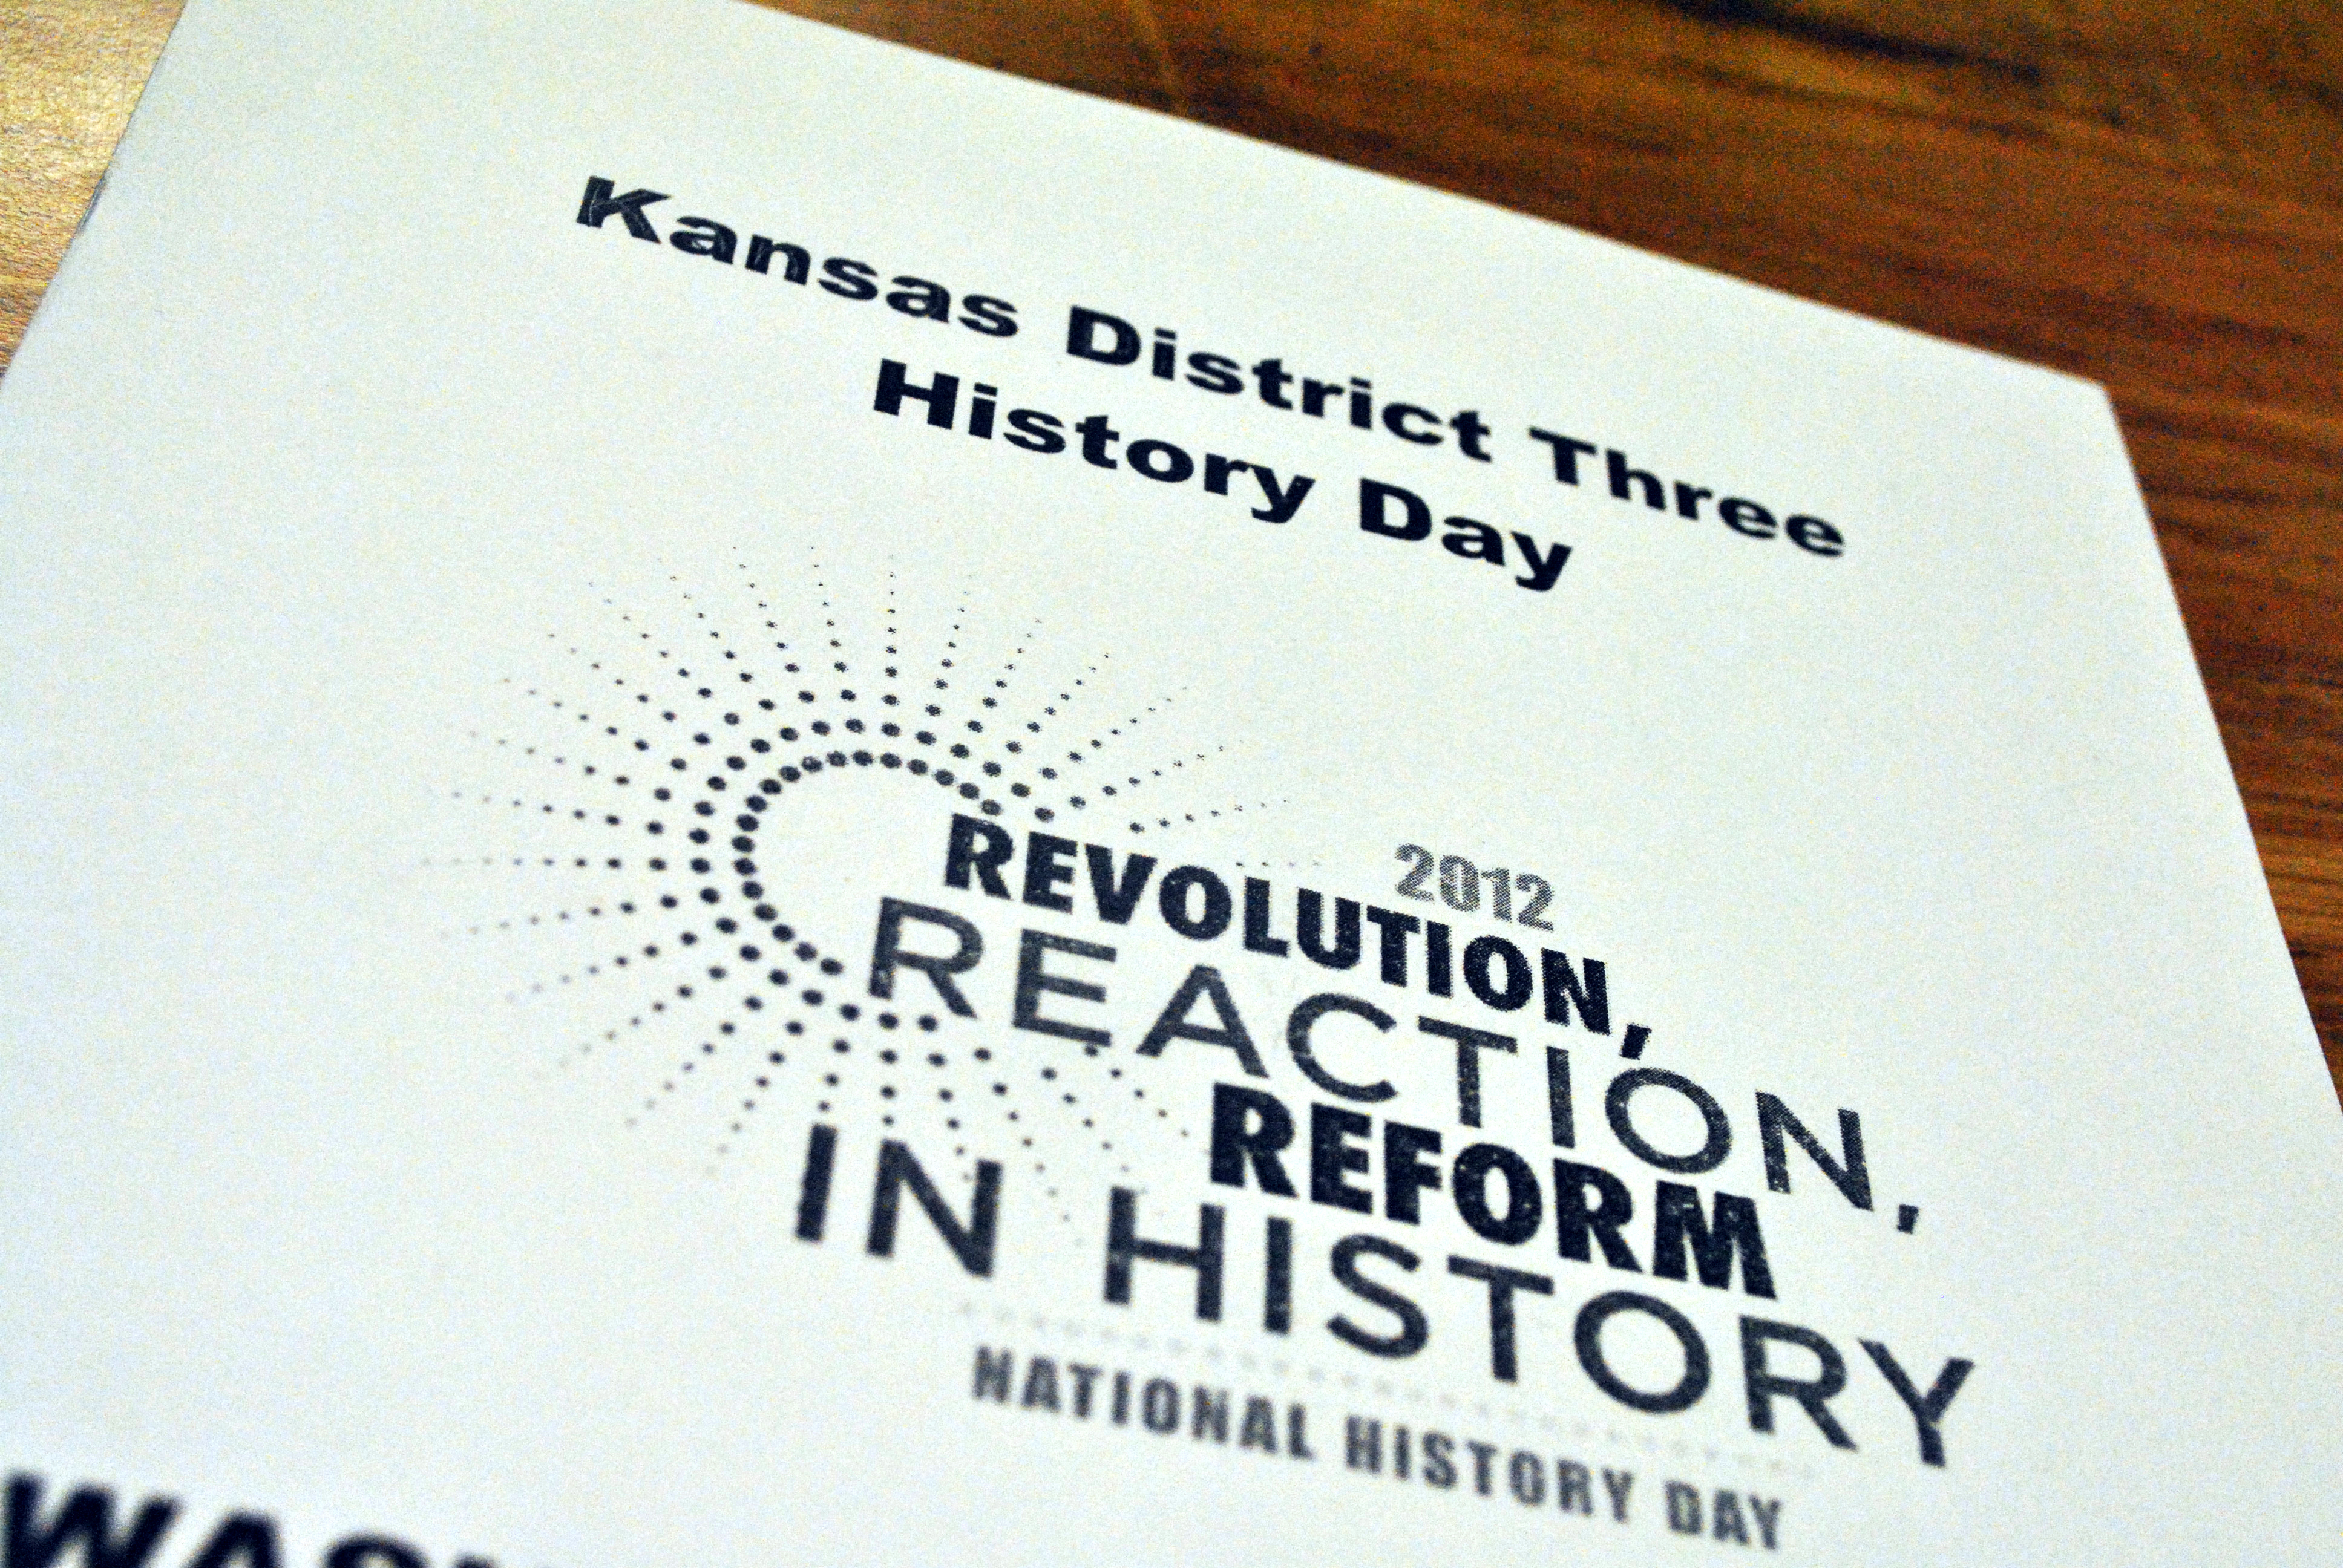 History Day finalists announced